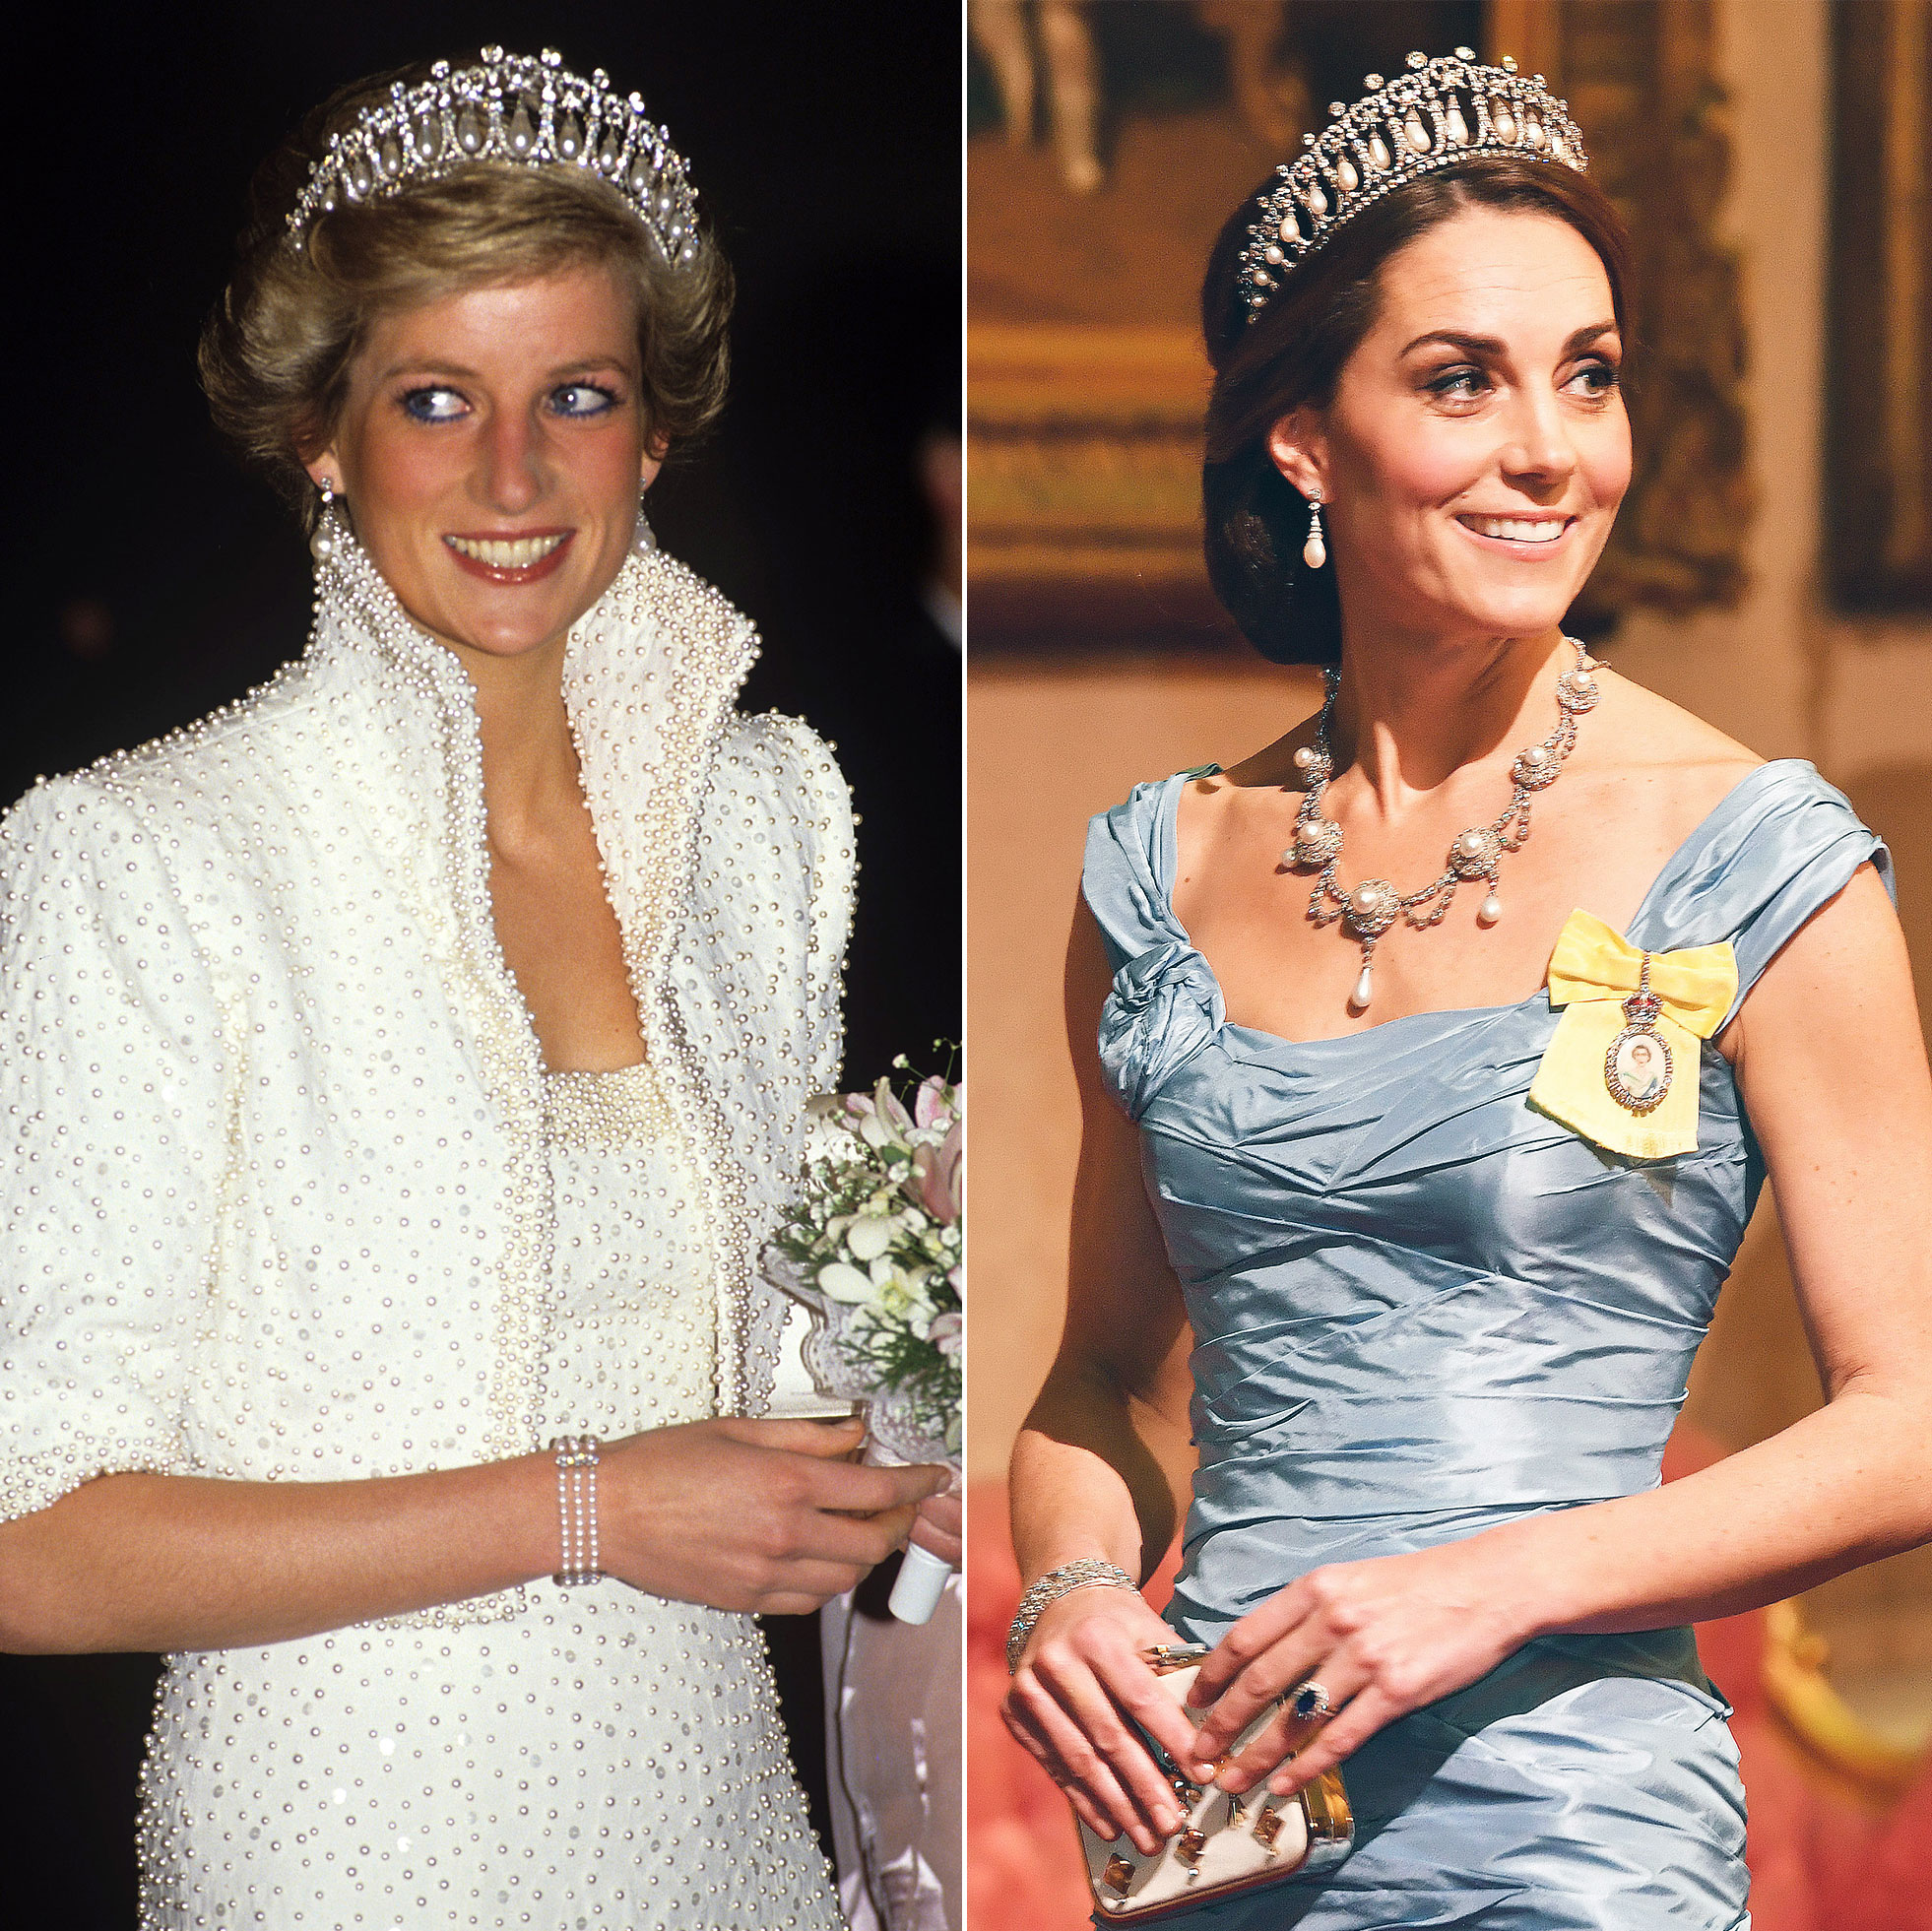 princess diana s jewelry worn by kate middleton meghan markle pics kate middleton meghan markle